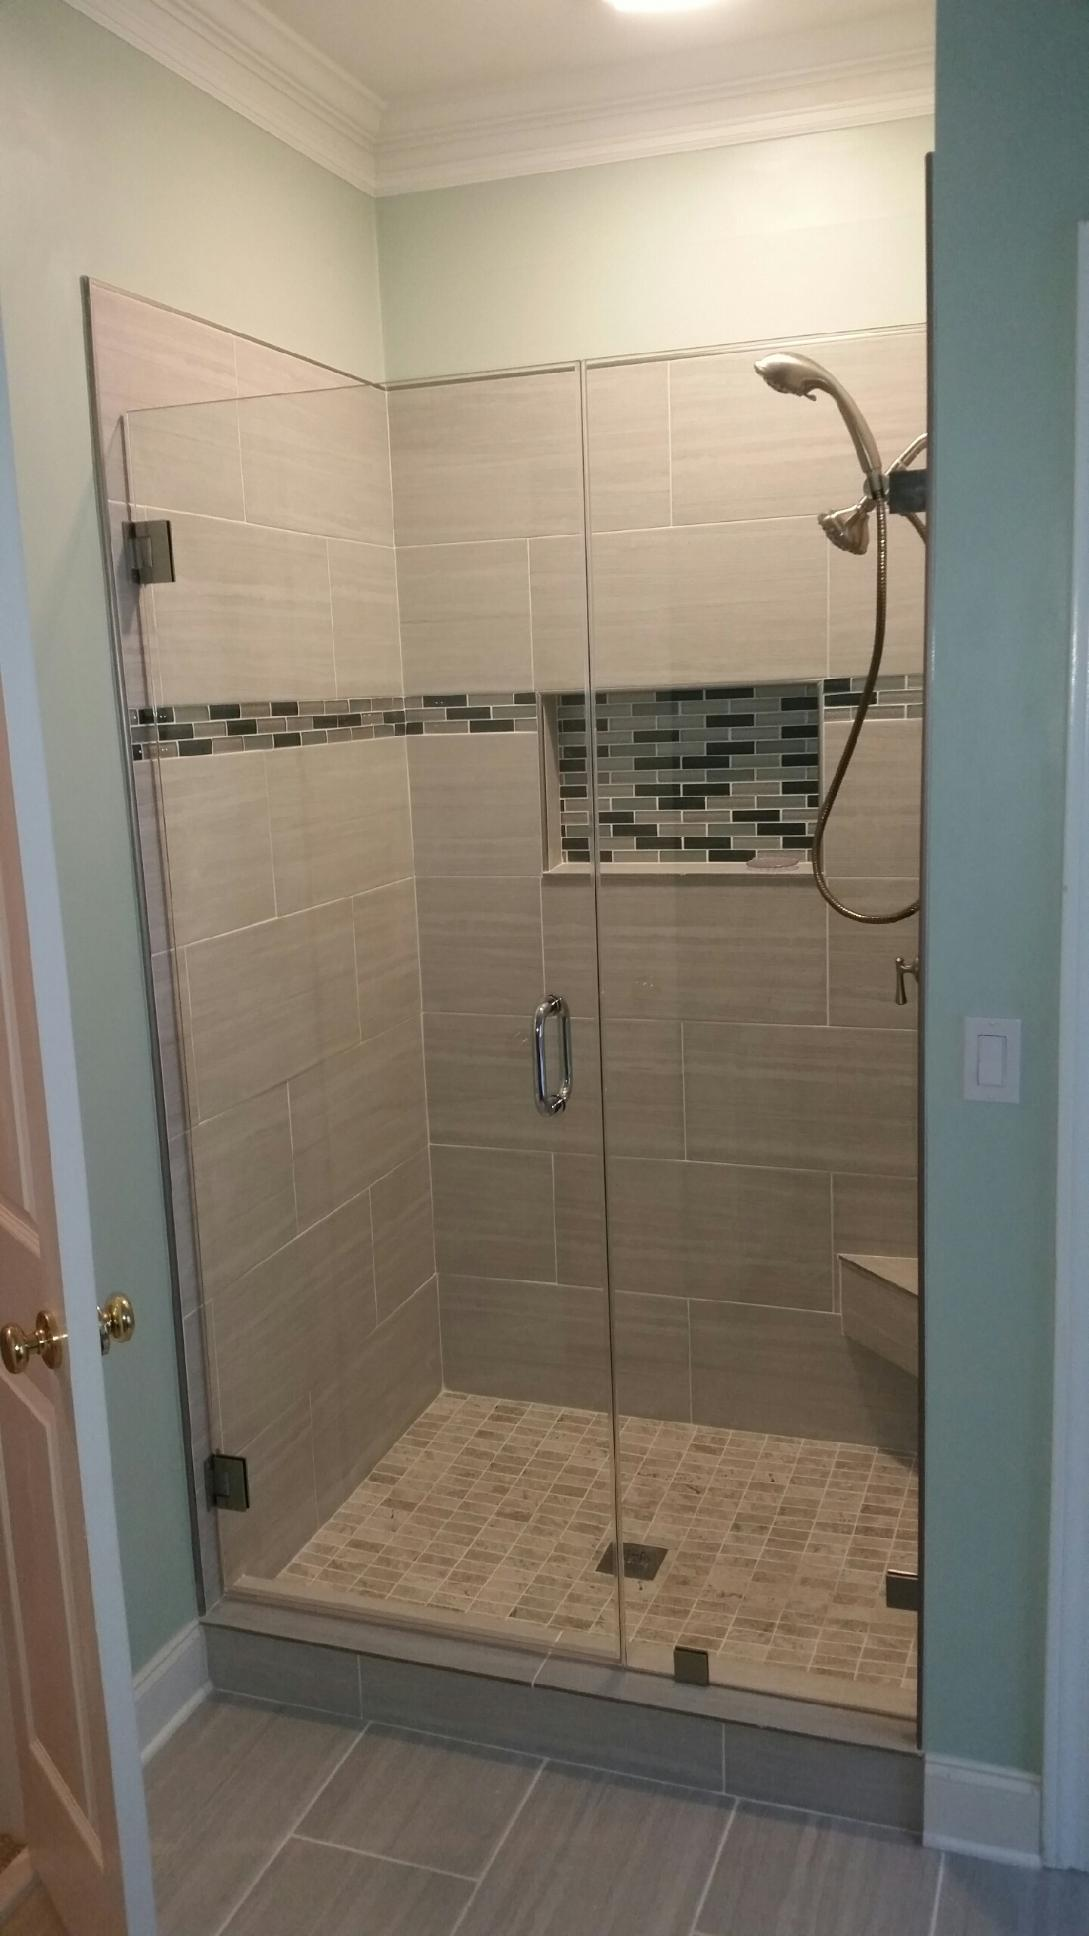 Frameless shower doors custom glass shower doors atlanta ga georgia frameless glass shower doors for a home near atlanta roswell and sandy springs planetlyrics